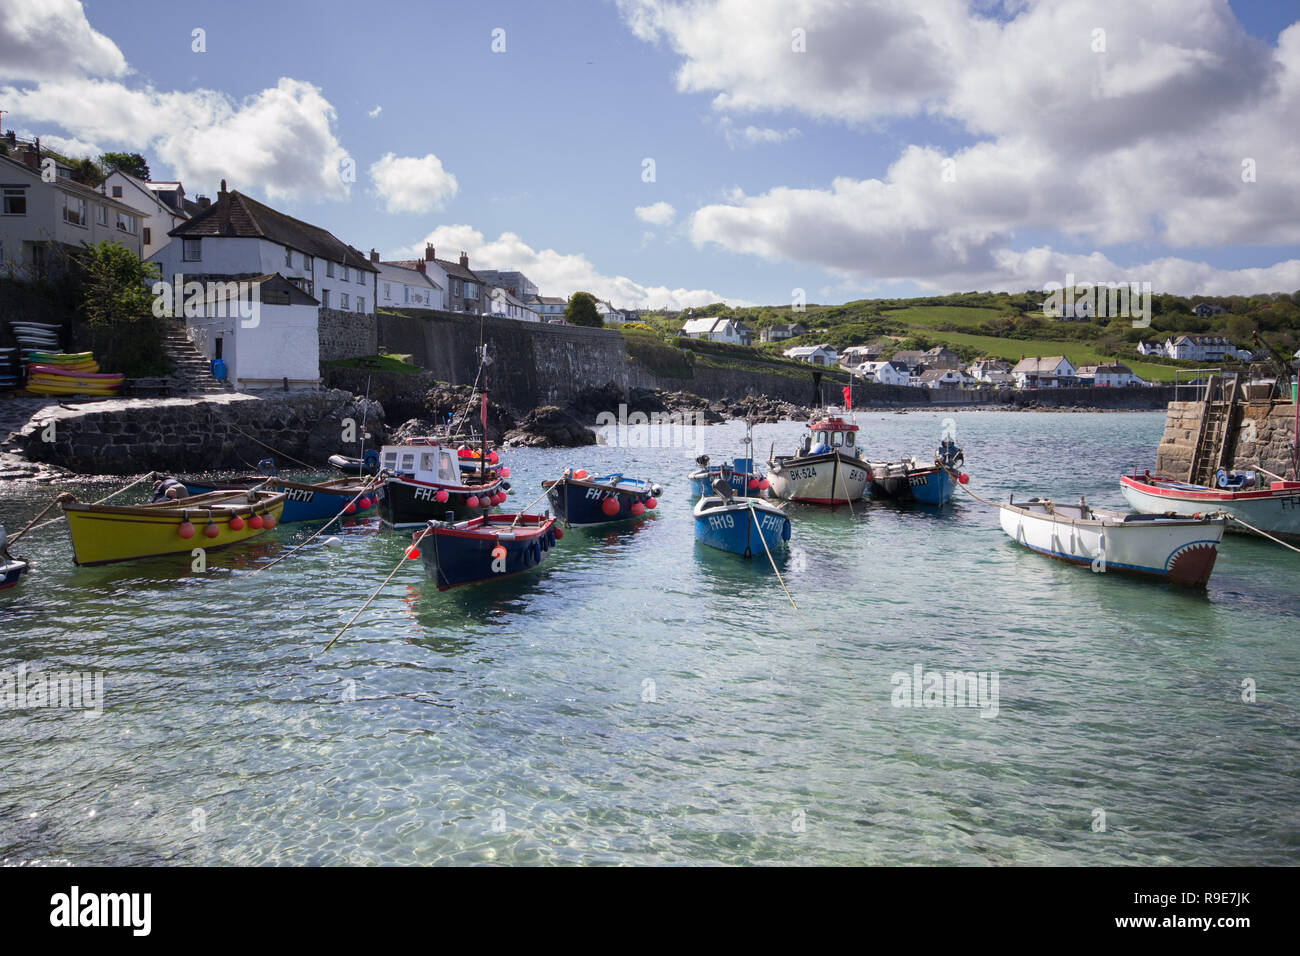 Moored boats in the clear water at Coverack Harbour in Cornwall - Stock Image